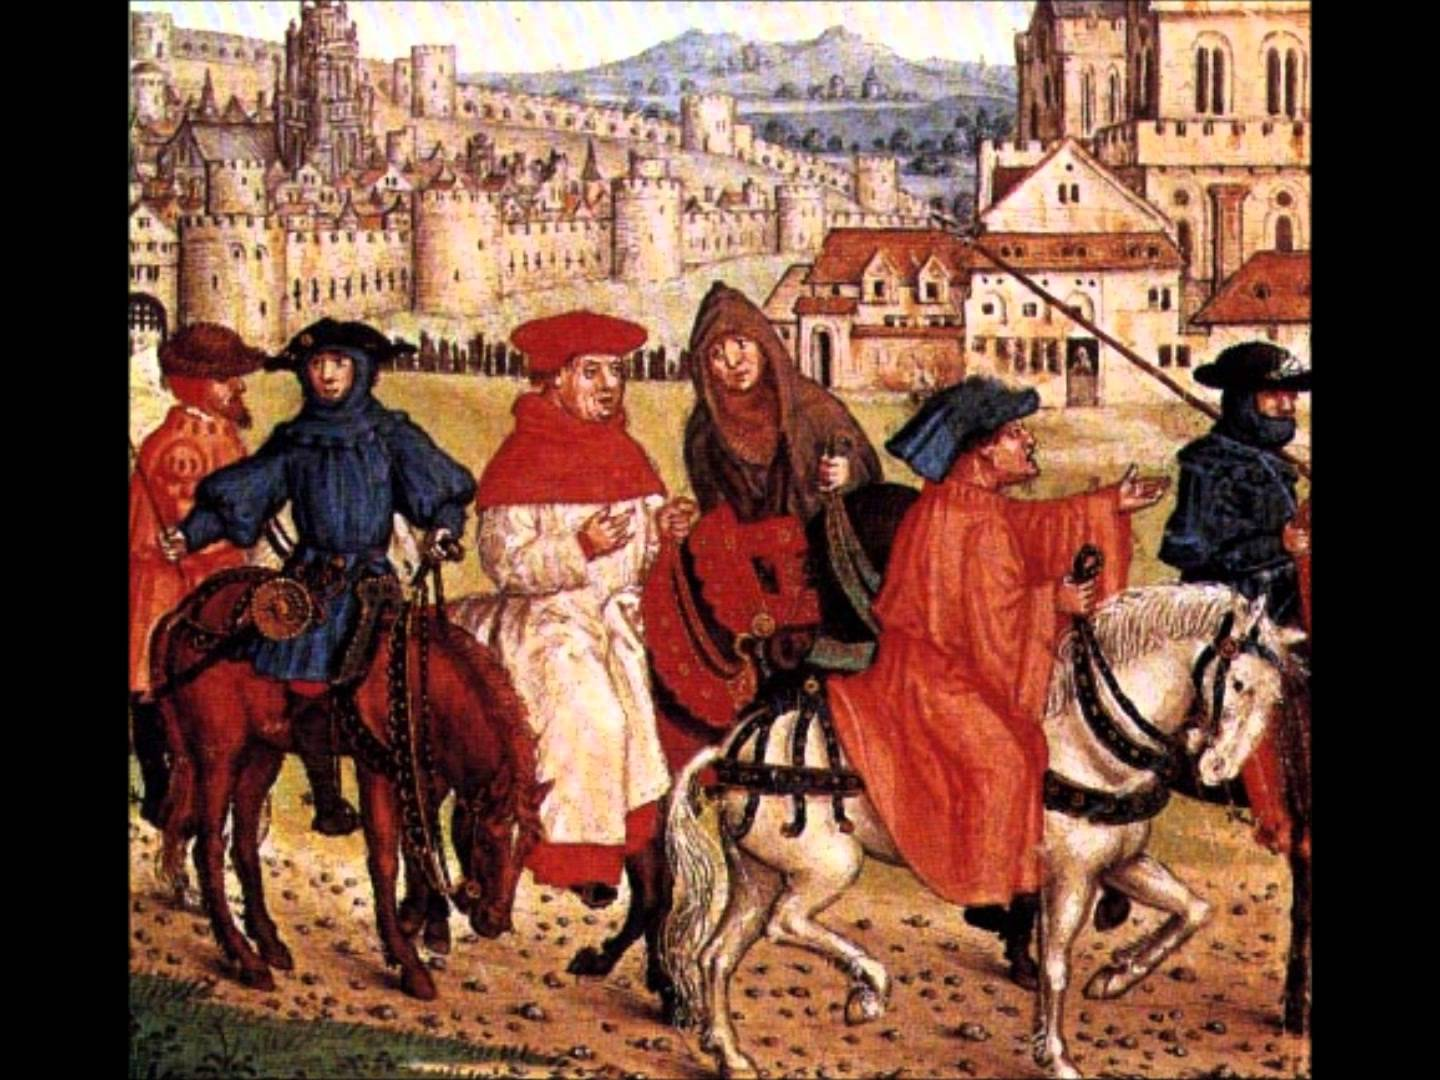 With Brexit Uk Betrayed Spirit Of Chaucer